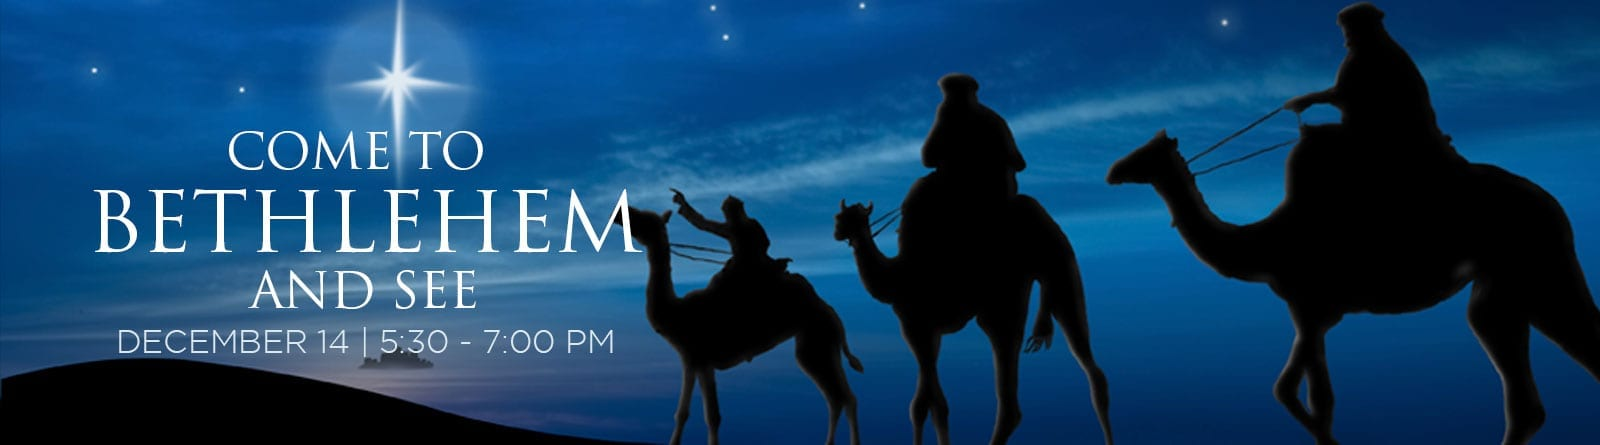 come-to-bethlehem-1600×445